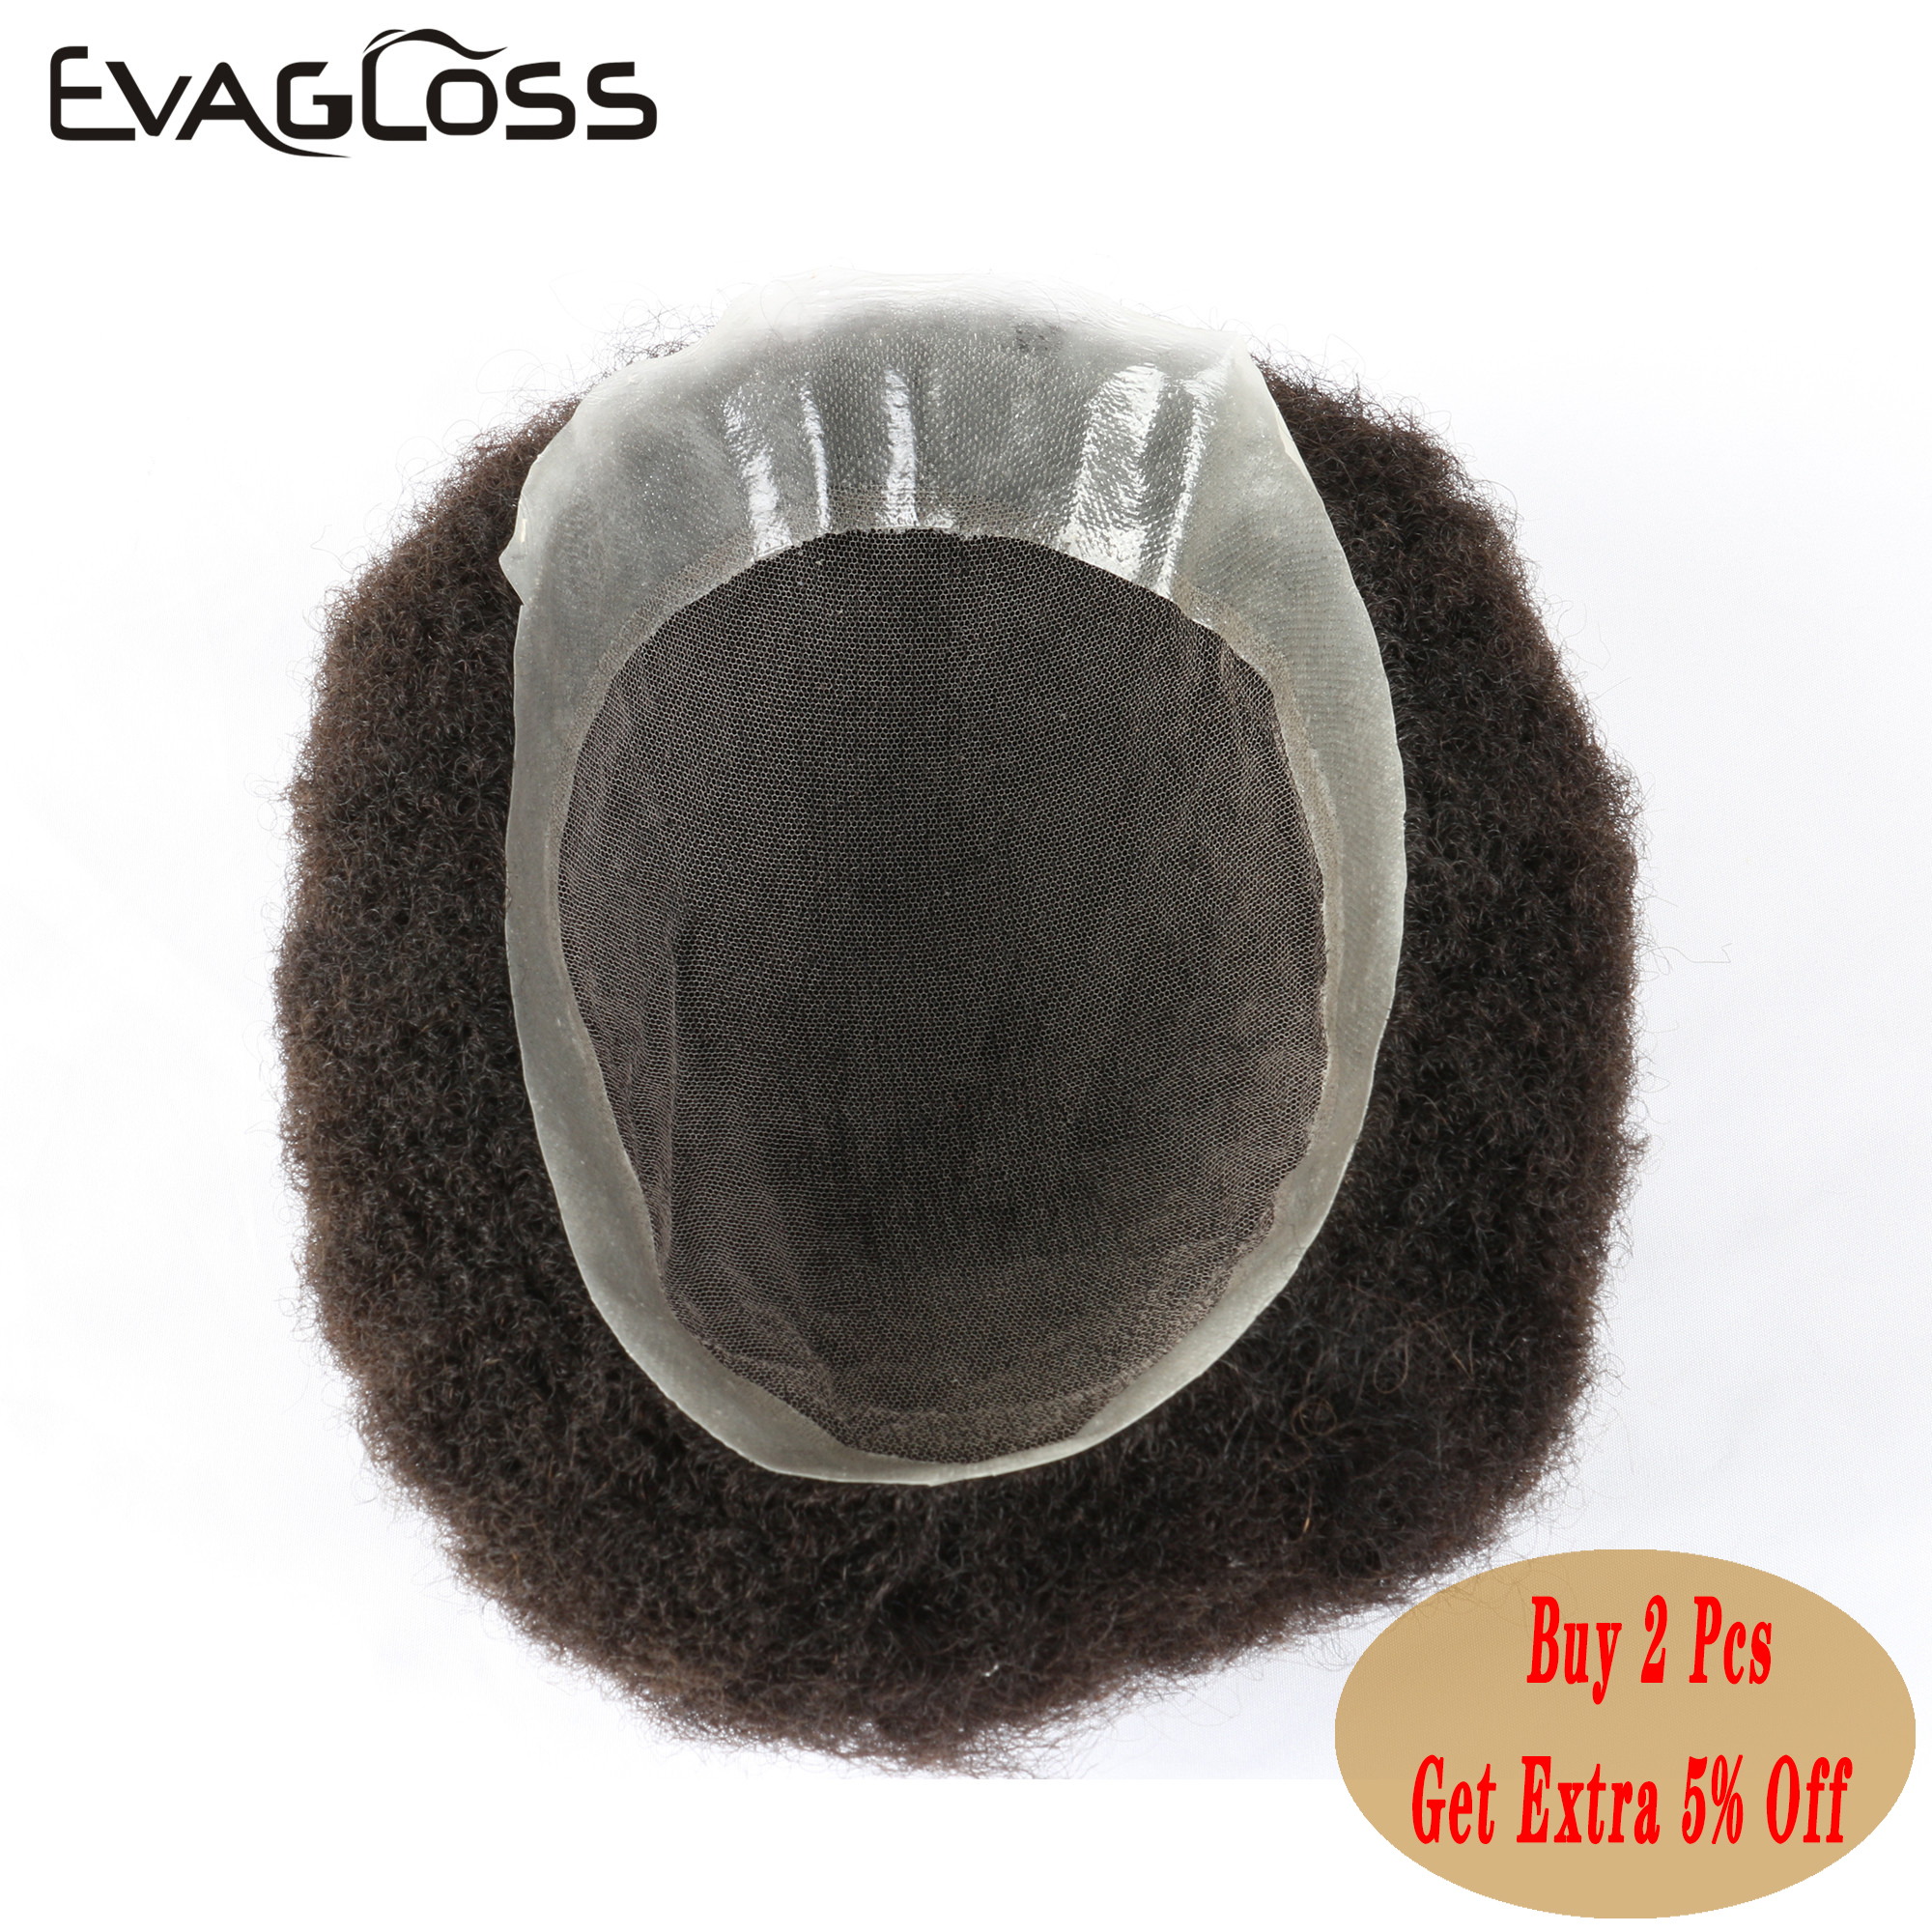 EVAGLOSS Fast Shipping Men Wig Kinky Curly Color Swiss Lace With Thin PU Base Human Hair Men's Toupee Wig For Black Men